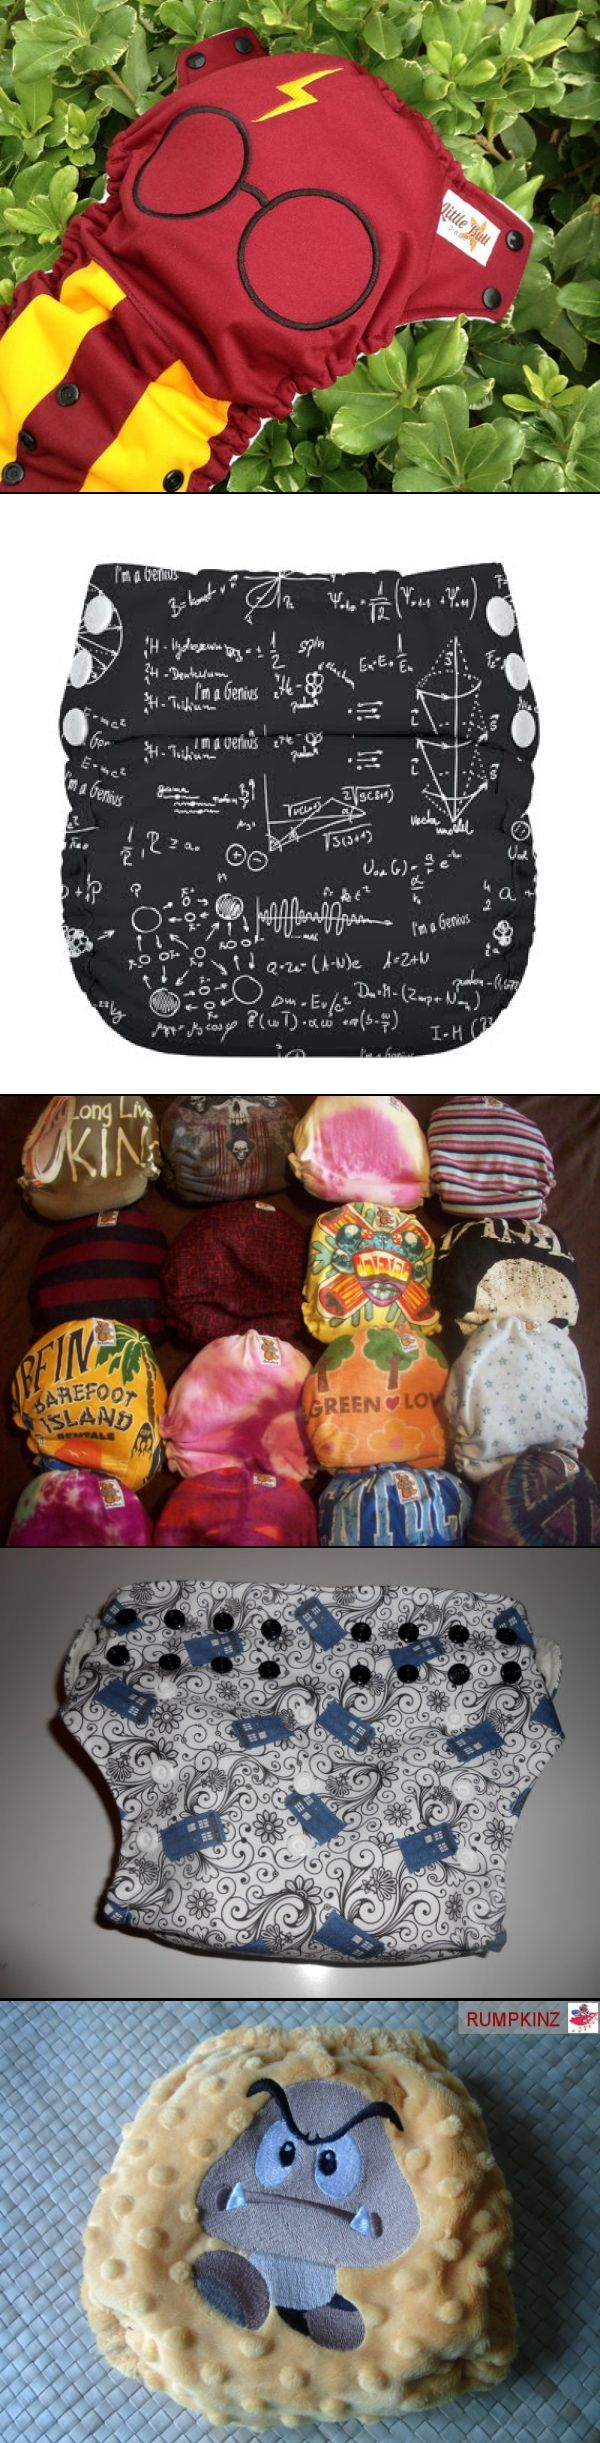 Nerdy Nappies: Not Your Mom's Cloth Diapers